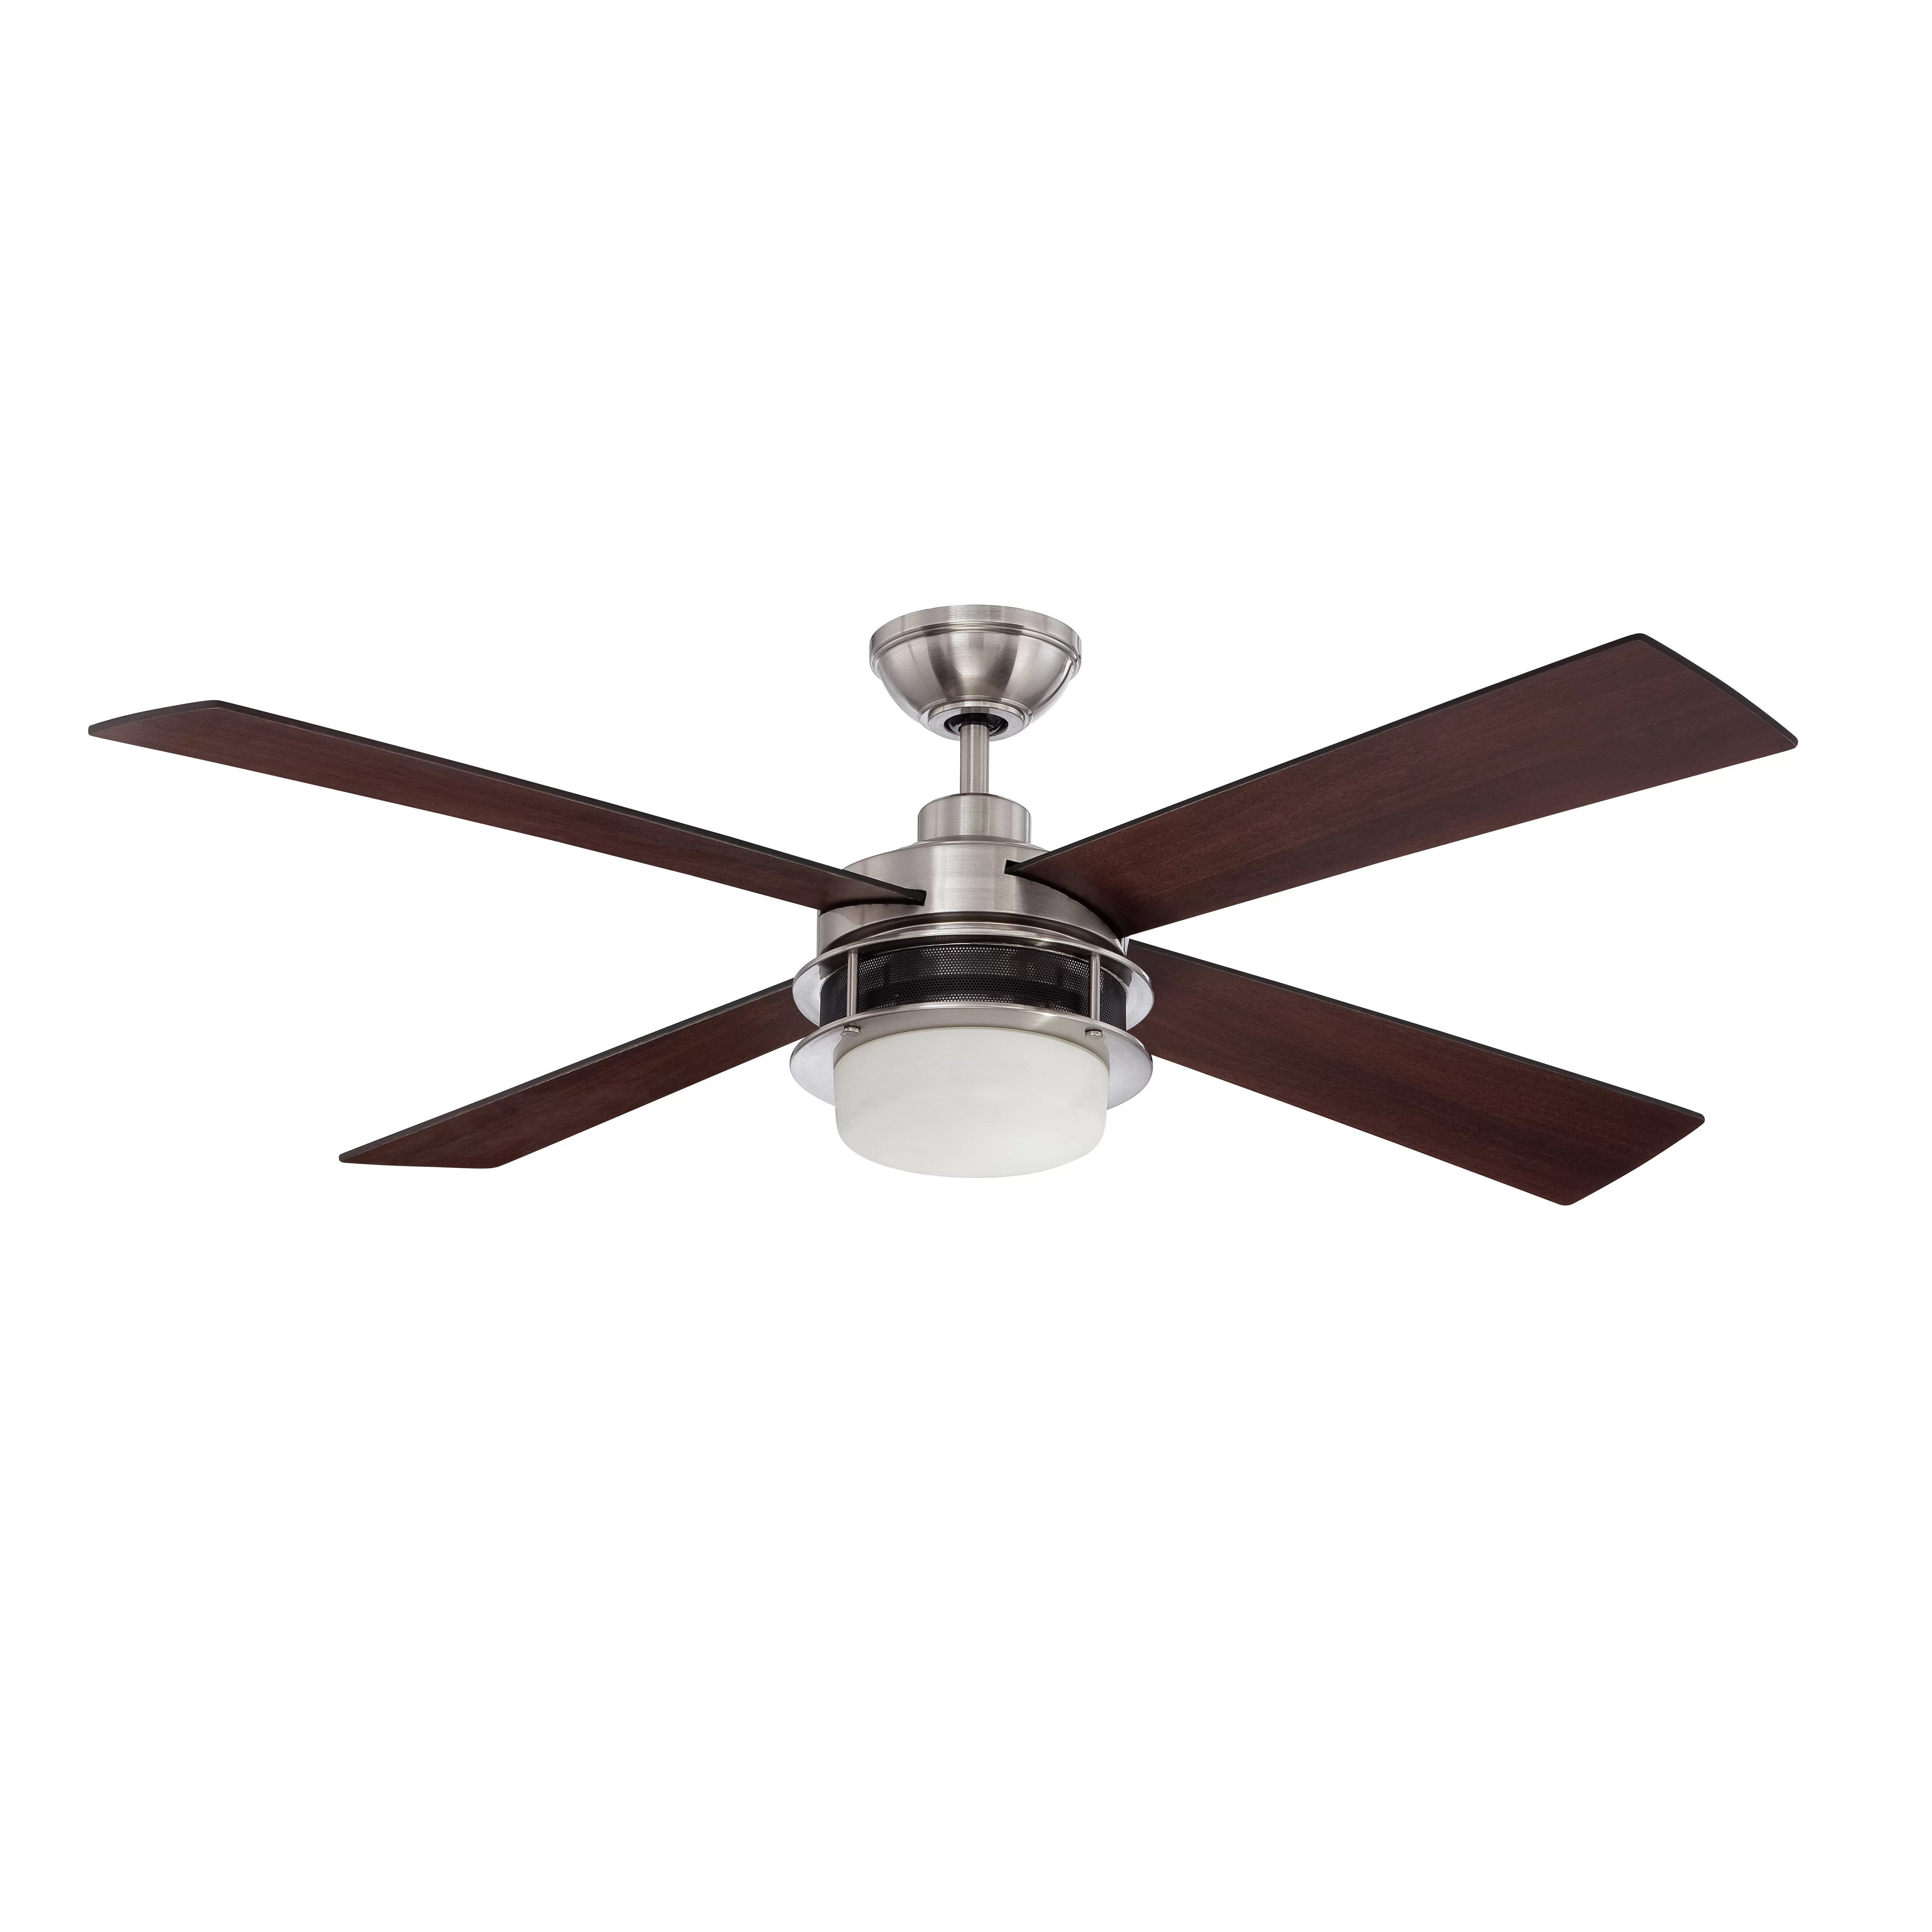 """Craftmade 52"""" Urban Breeze 4 Blade Ceiling Fan with Wall"""